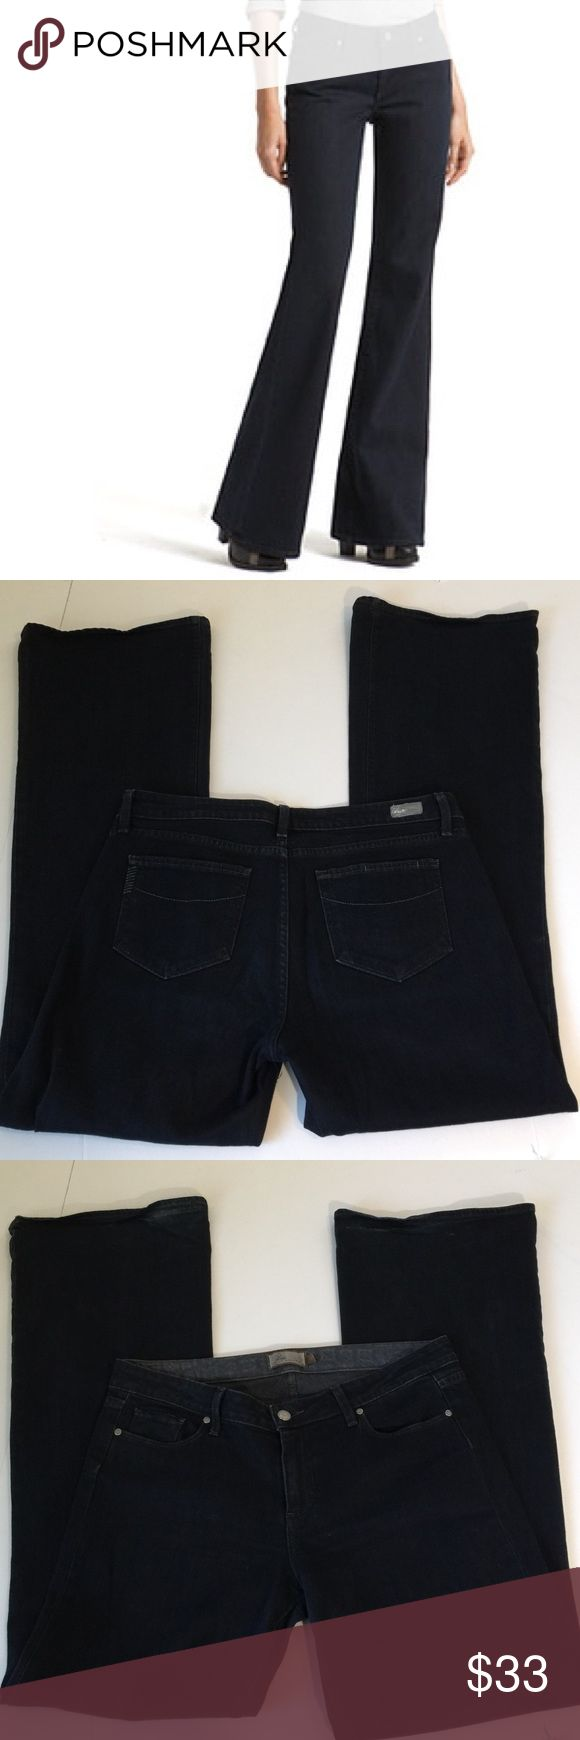 Paige Robertson Plus Size Flare Jeans, size 32 Paige Robertson Miss Rise Relaxed Wide Leg Flare Jeans in Plus Size 32. Flat lay measure of the waist is 18. Rise is 9.5, inseam is 35, and leg opening is 12. Made from98% cotton and 2% spandex. Color is a very dark wash blue. Slight distress by hems but is in otherwise excellent condition. Please ask if you have any questions. Paige Jeans Jeans Flare & Wide Leg